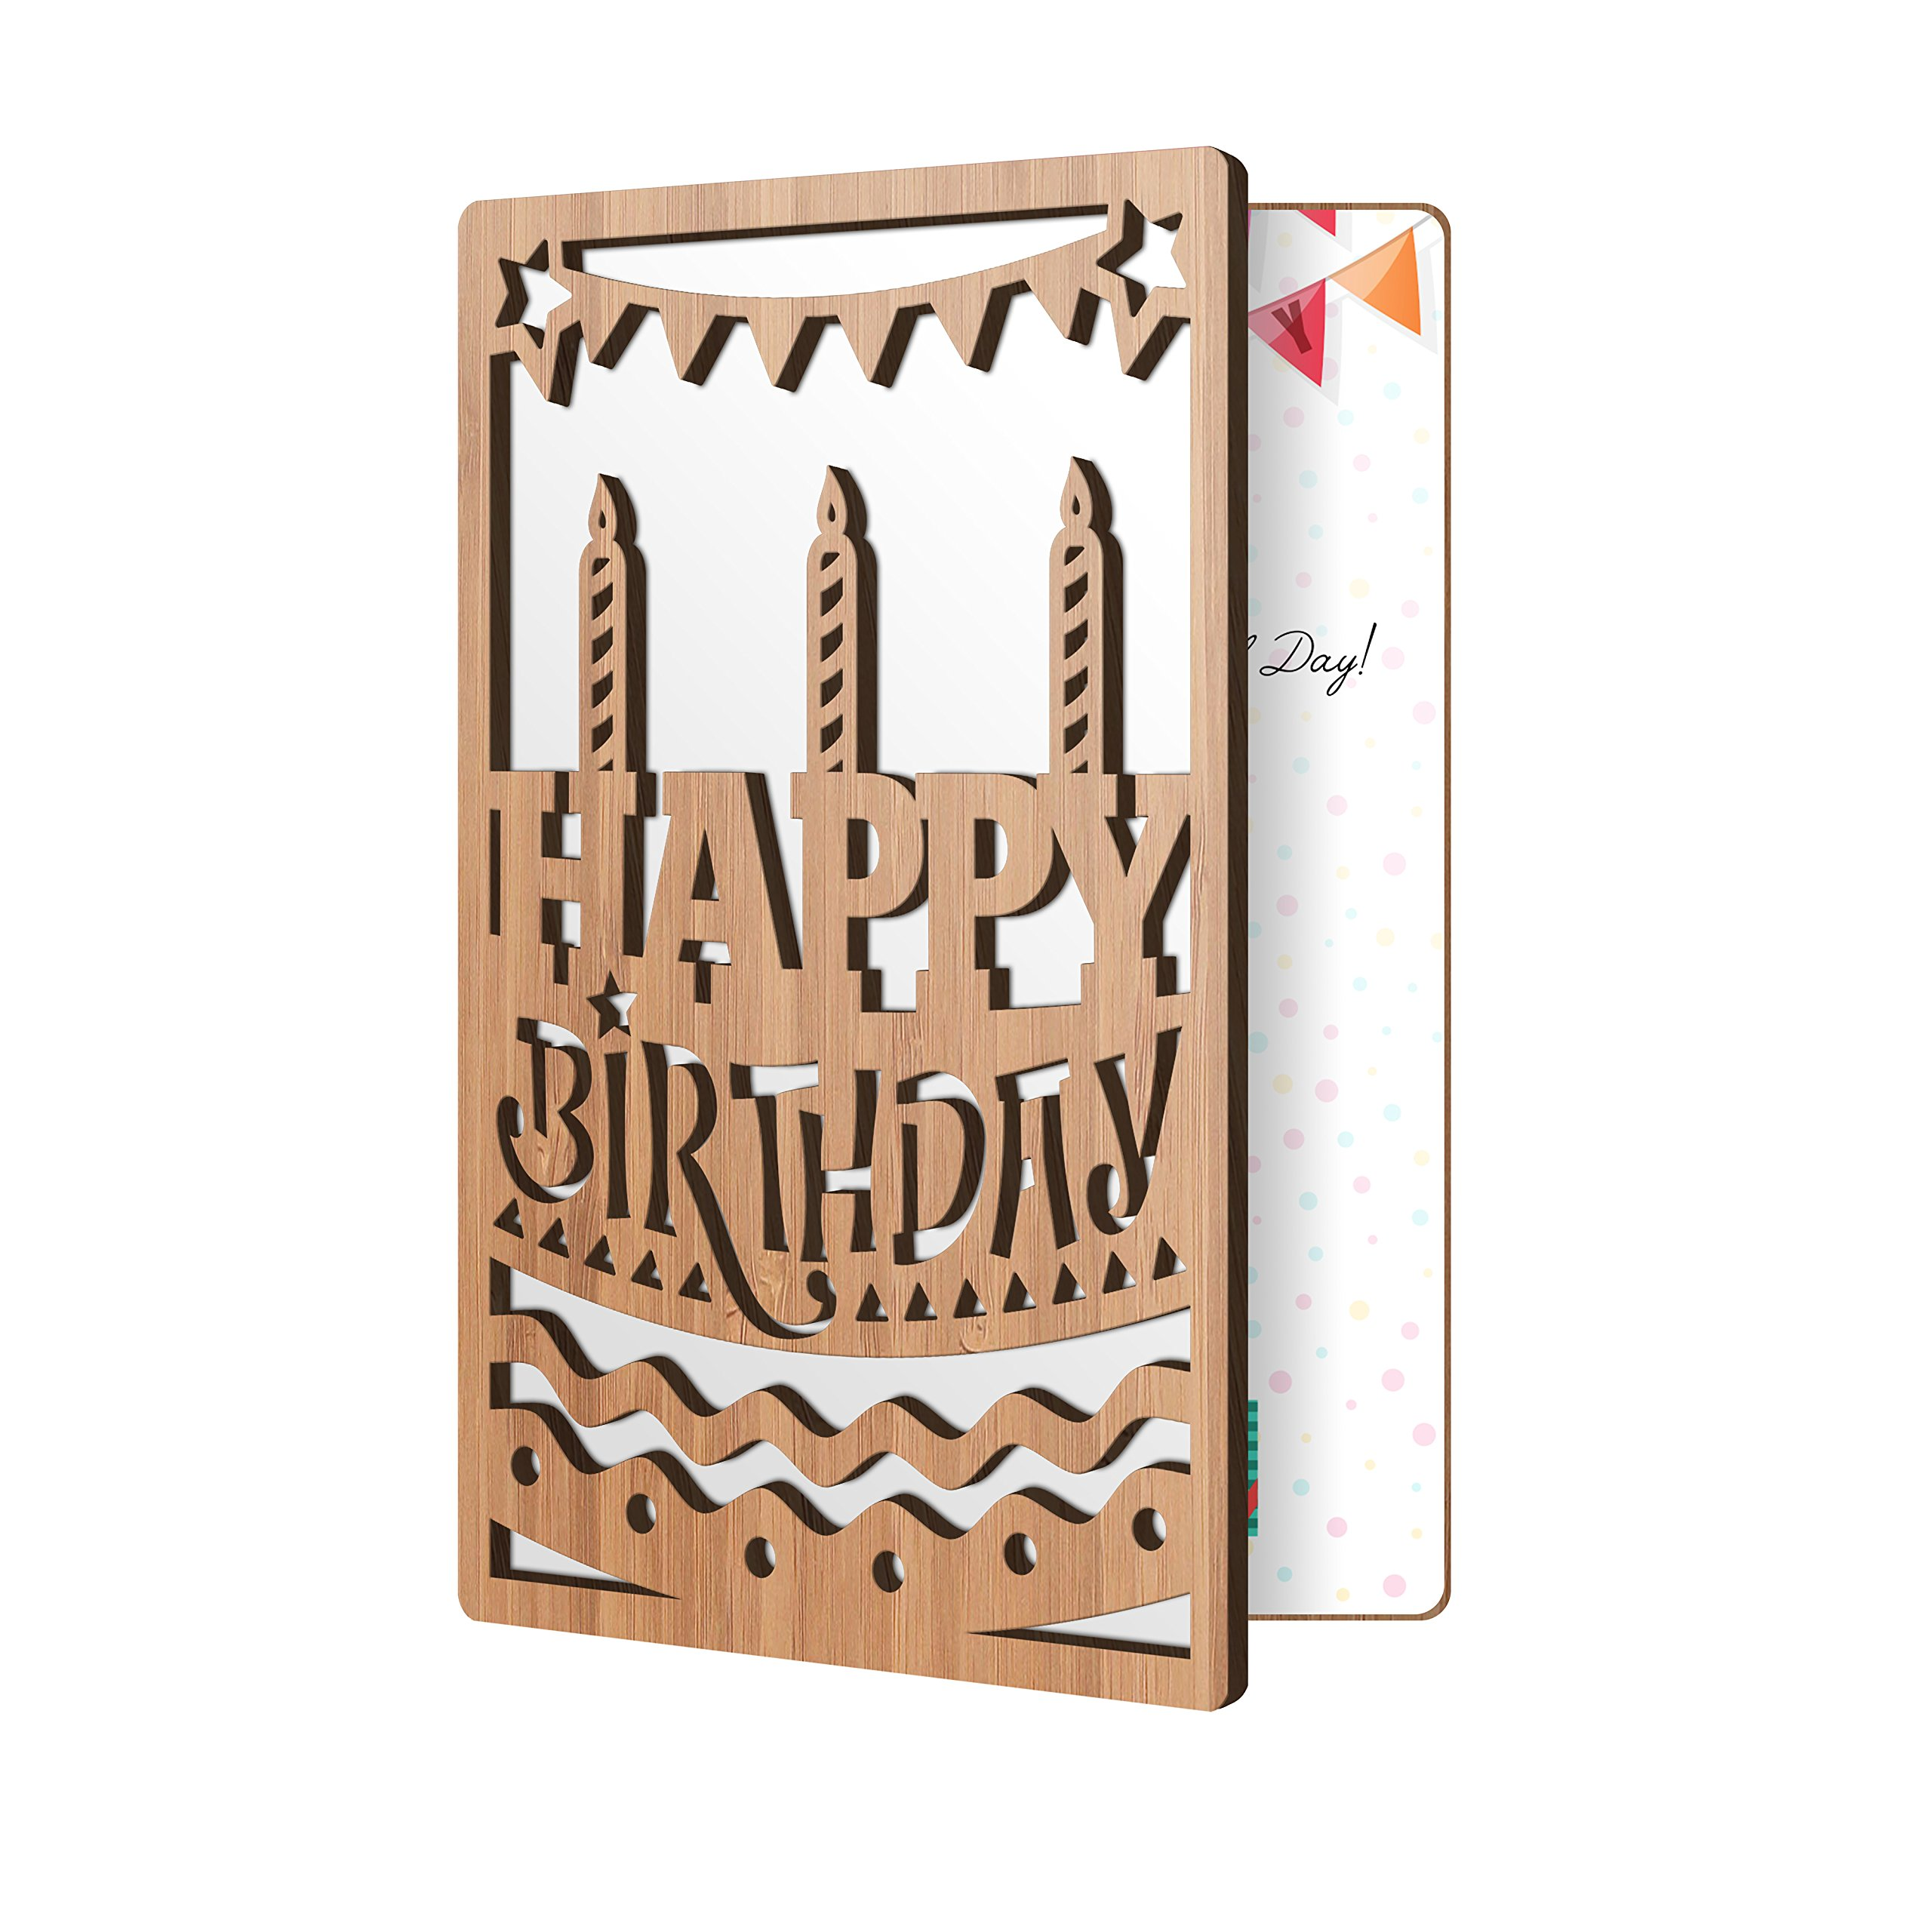 Happy Birthday Card: Bamboo Wood Greeting Card With Happy B Day Cake & Candles Design, Premium Handmade Wooden Card Perfect For Sending Birthday Wishes